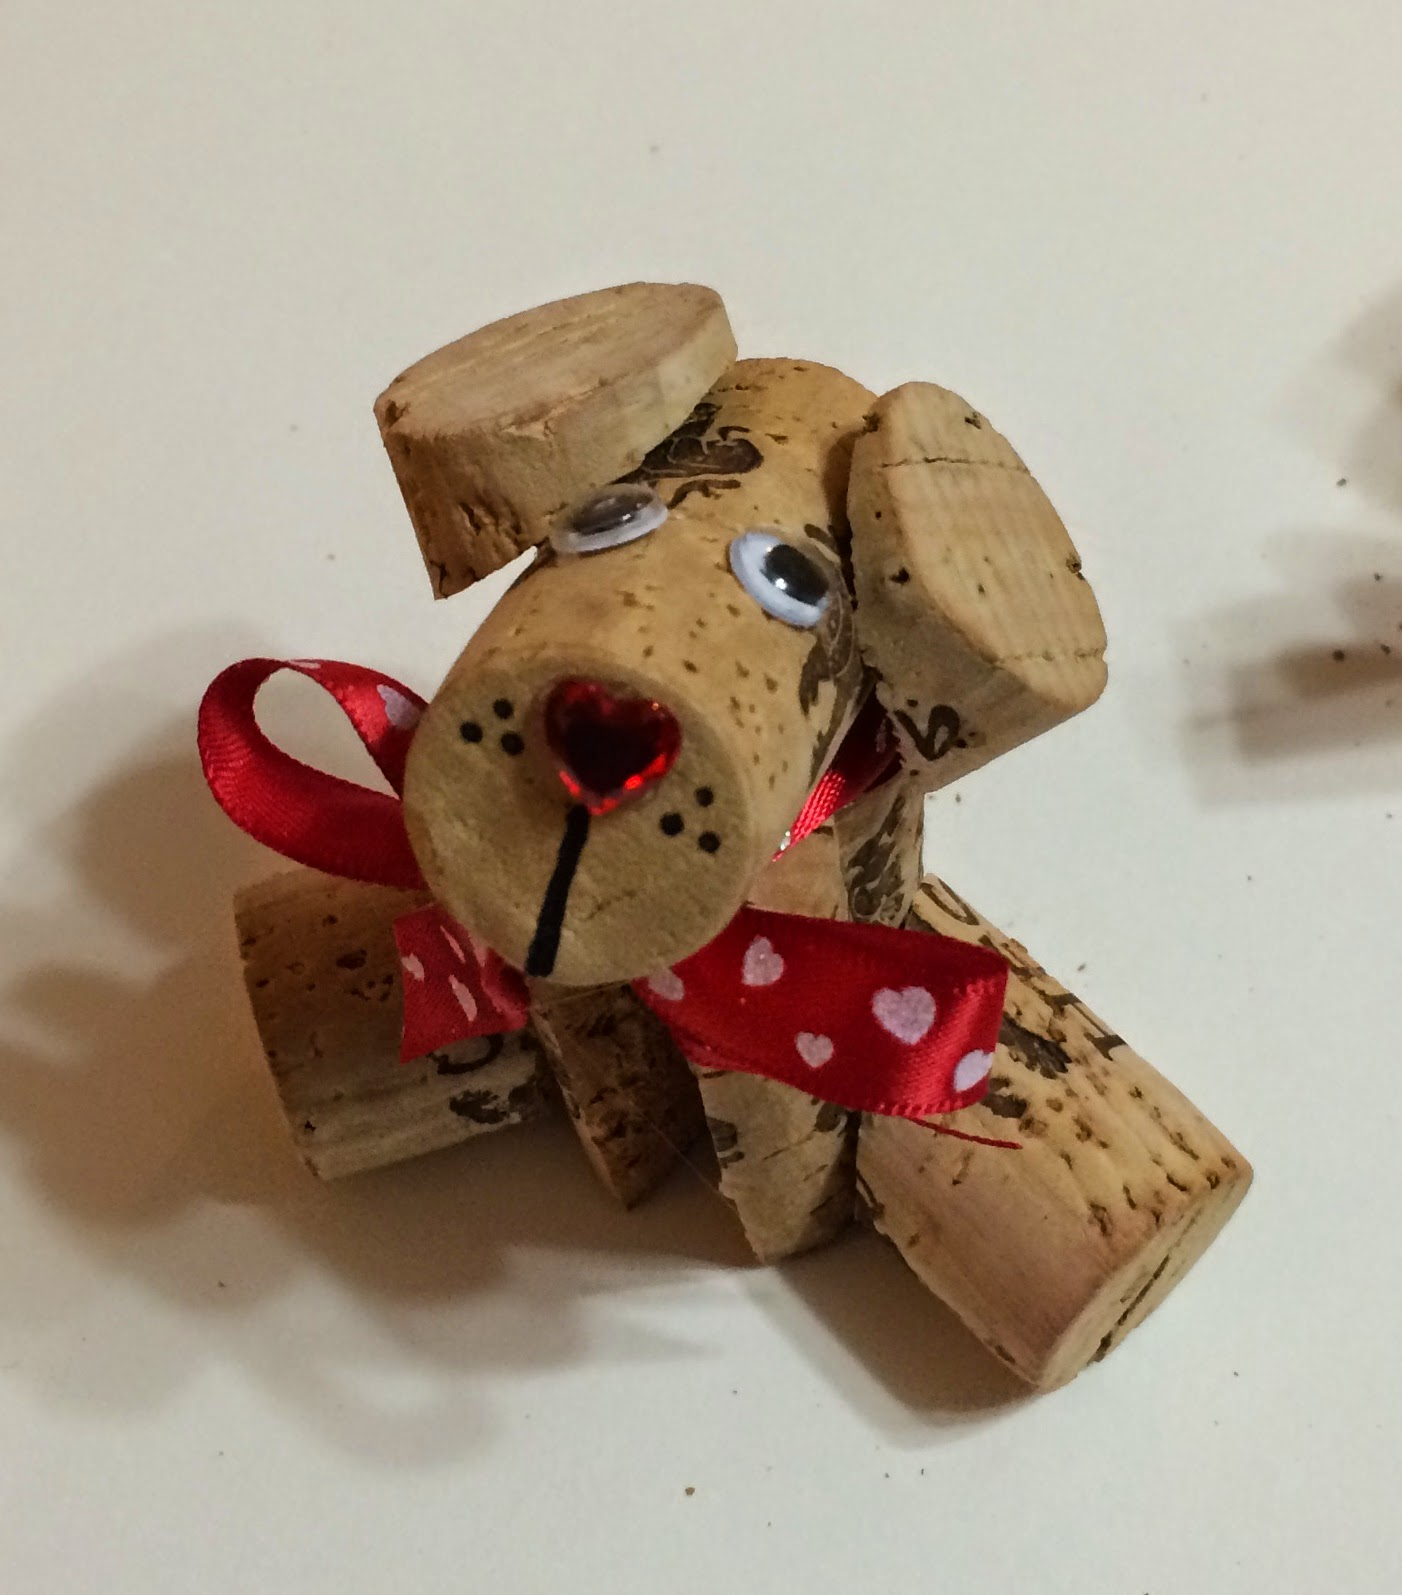 Kathy 39 s art project ideas corky the wine cork doggy diy - Manualidades con corchos ...